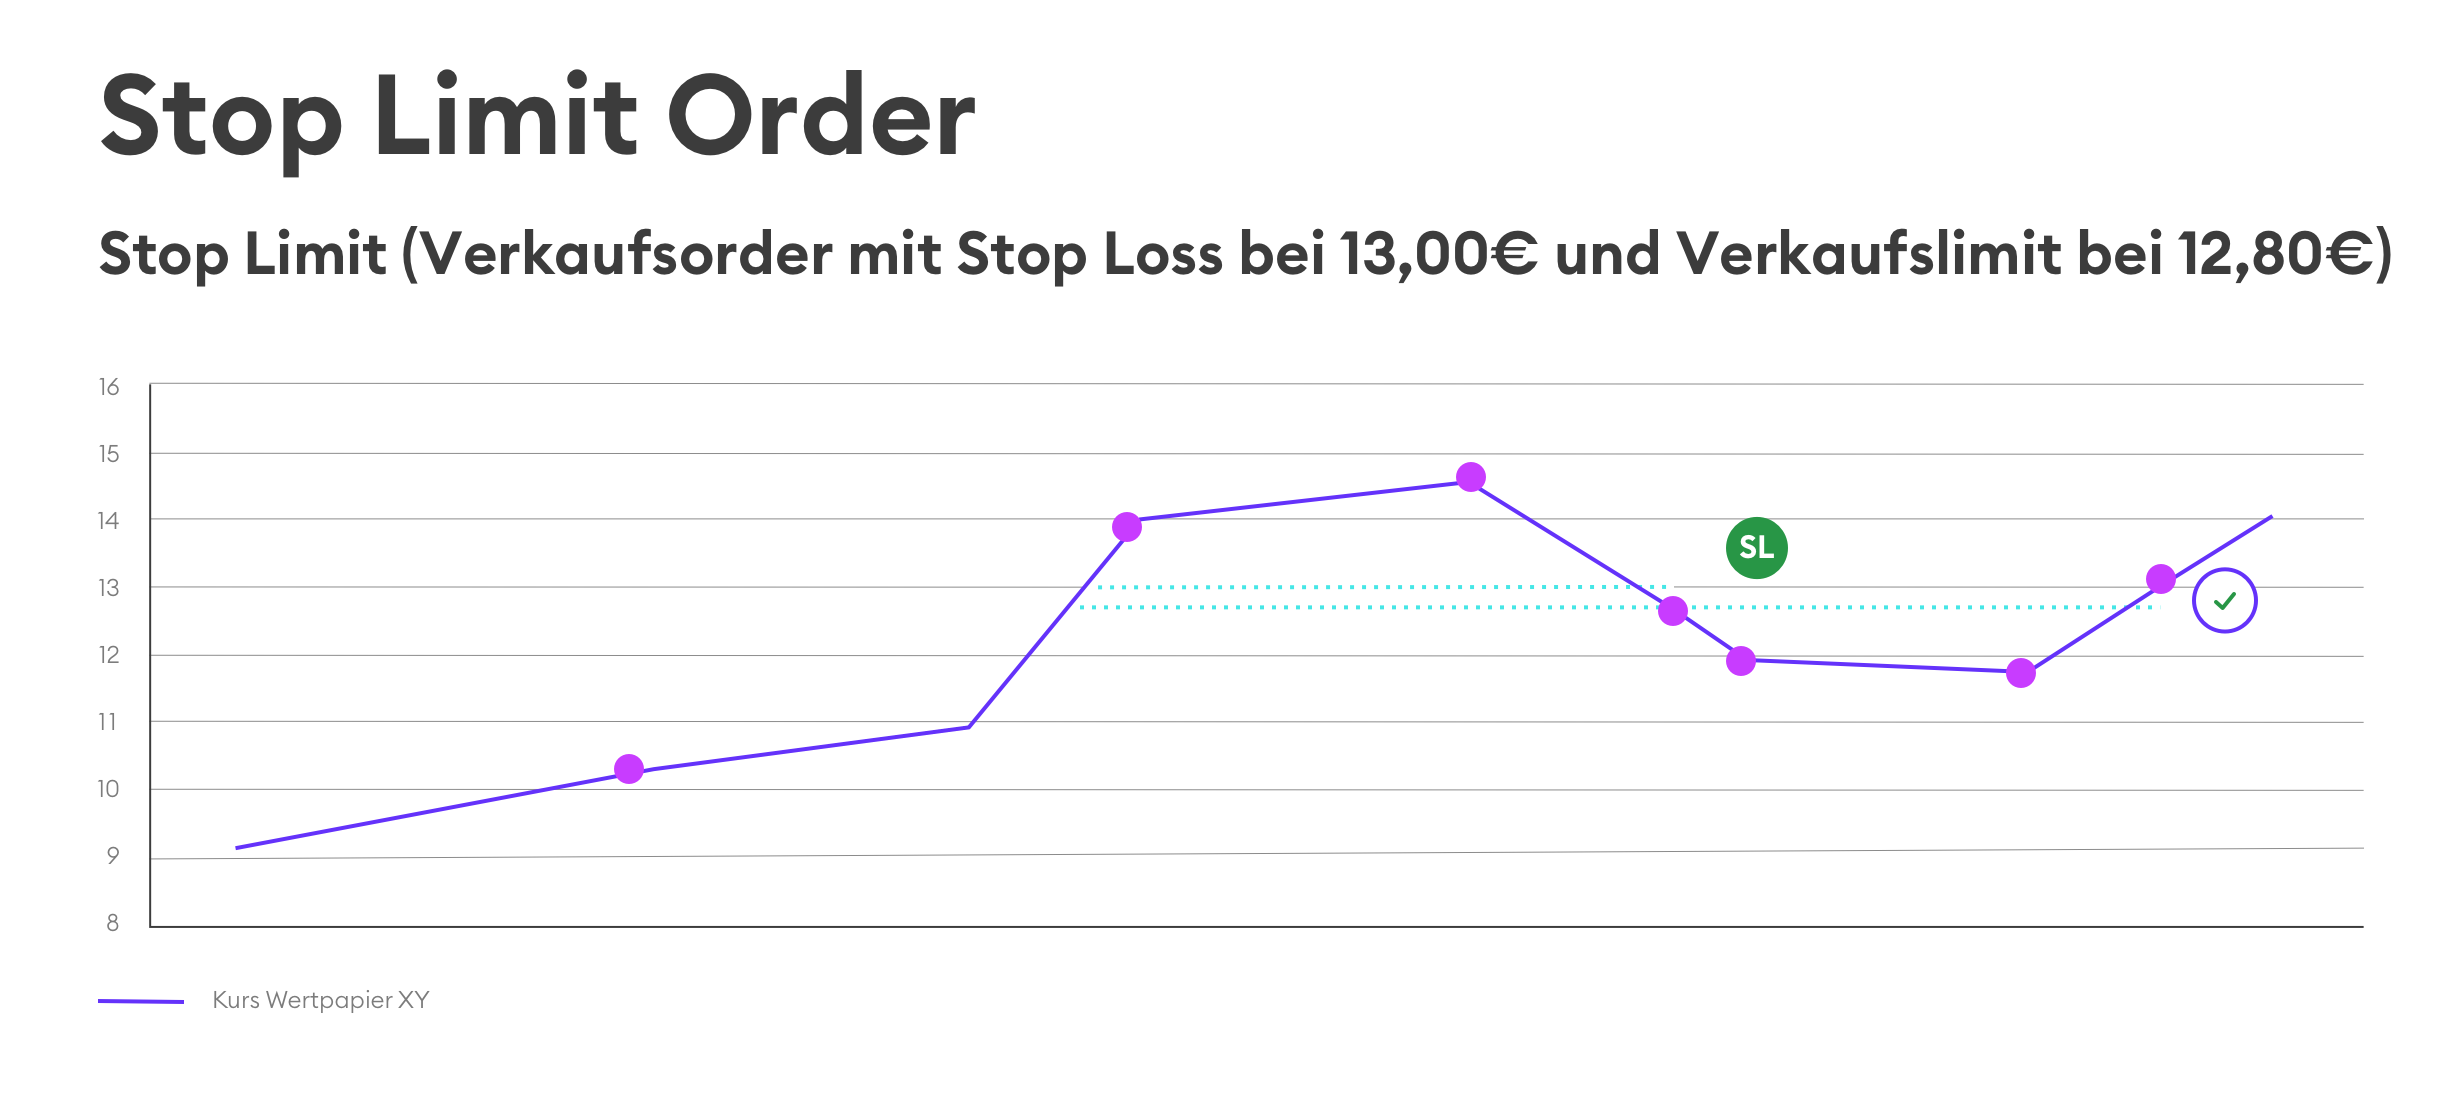 Stop Loss und Stop Limit